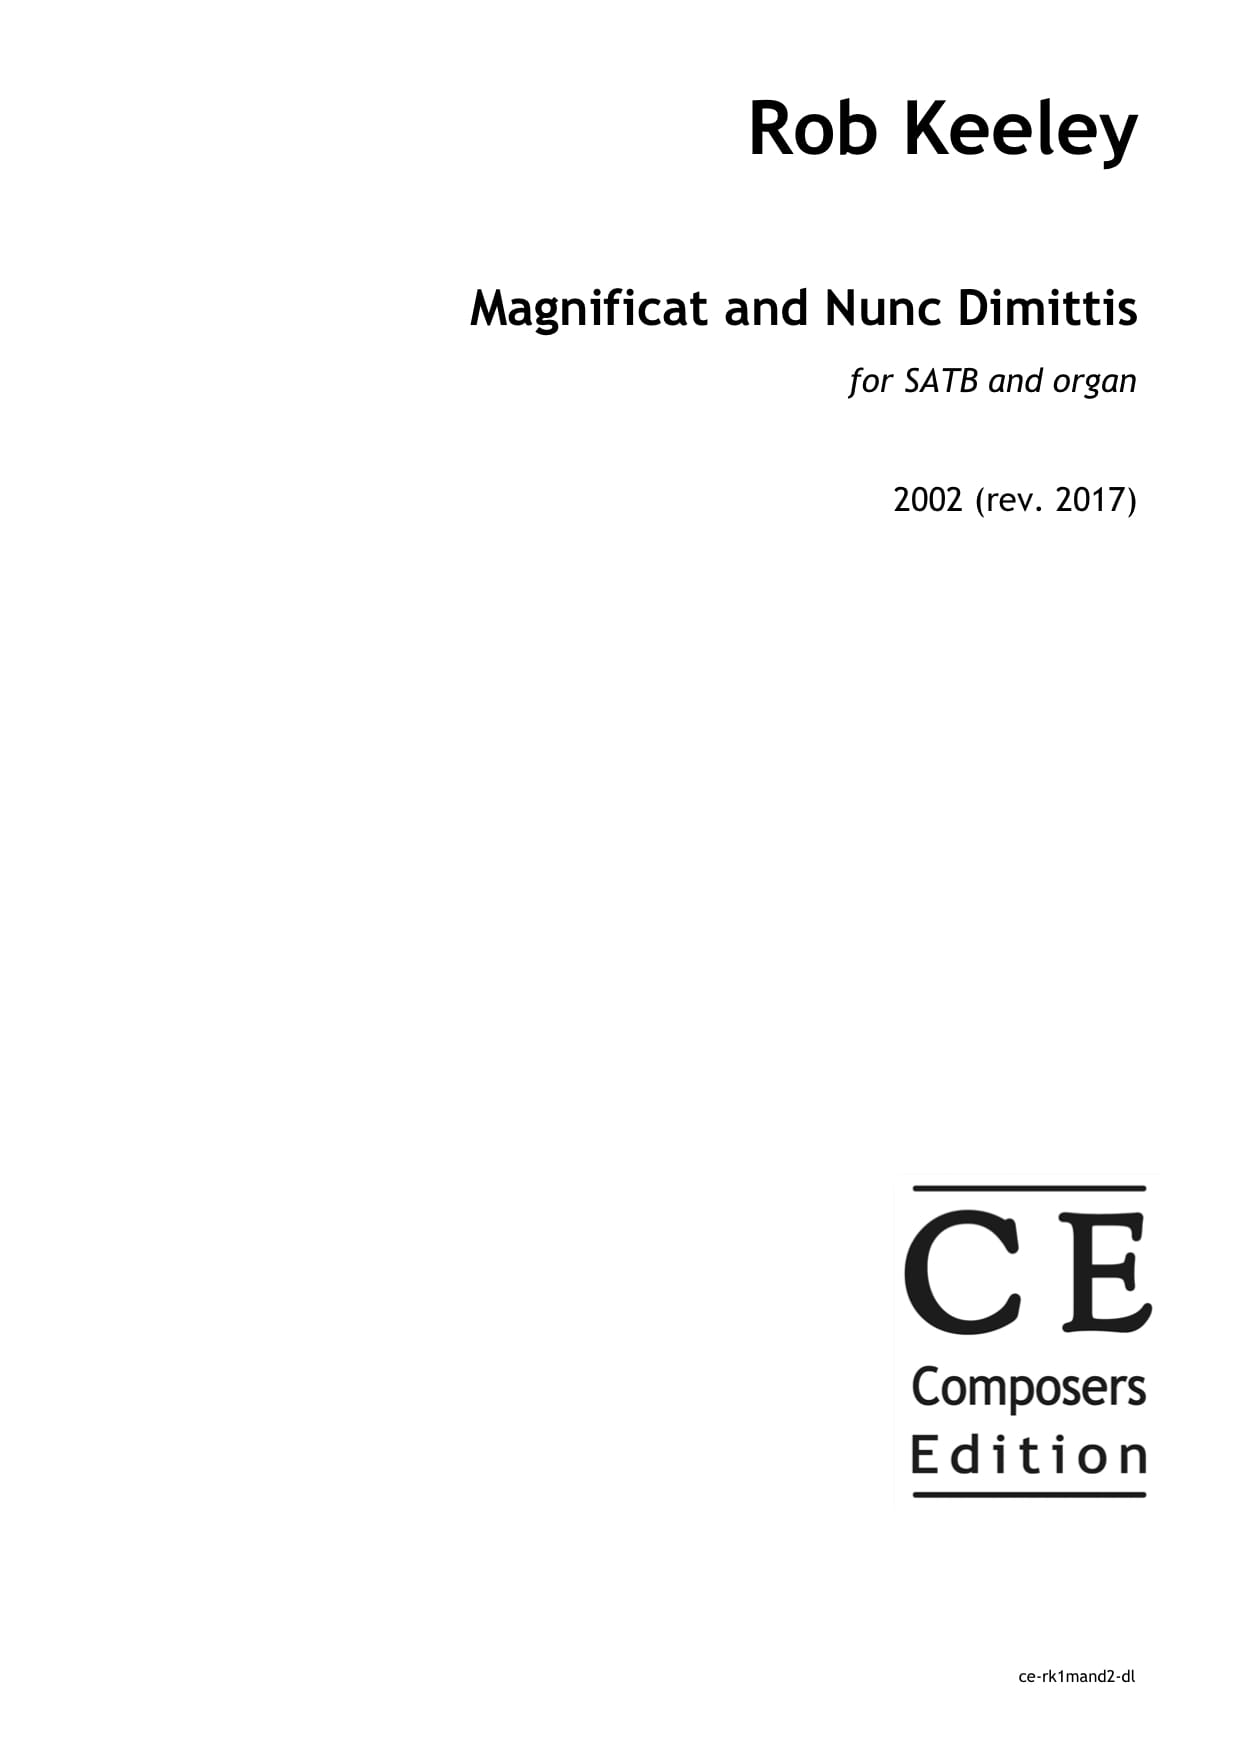 Rob Keeley: Magnificat and Nunc Dimittis for SATB and organ